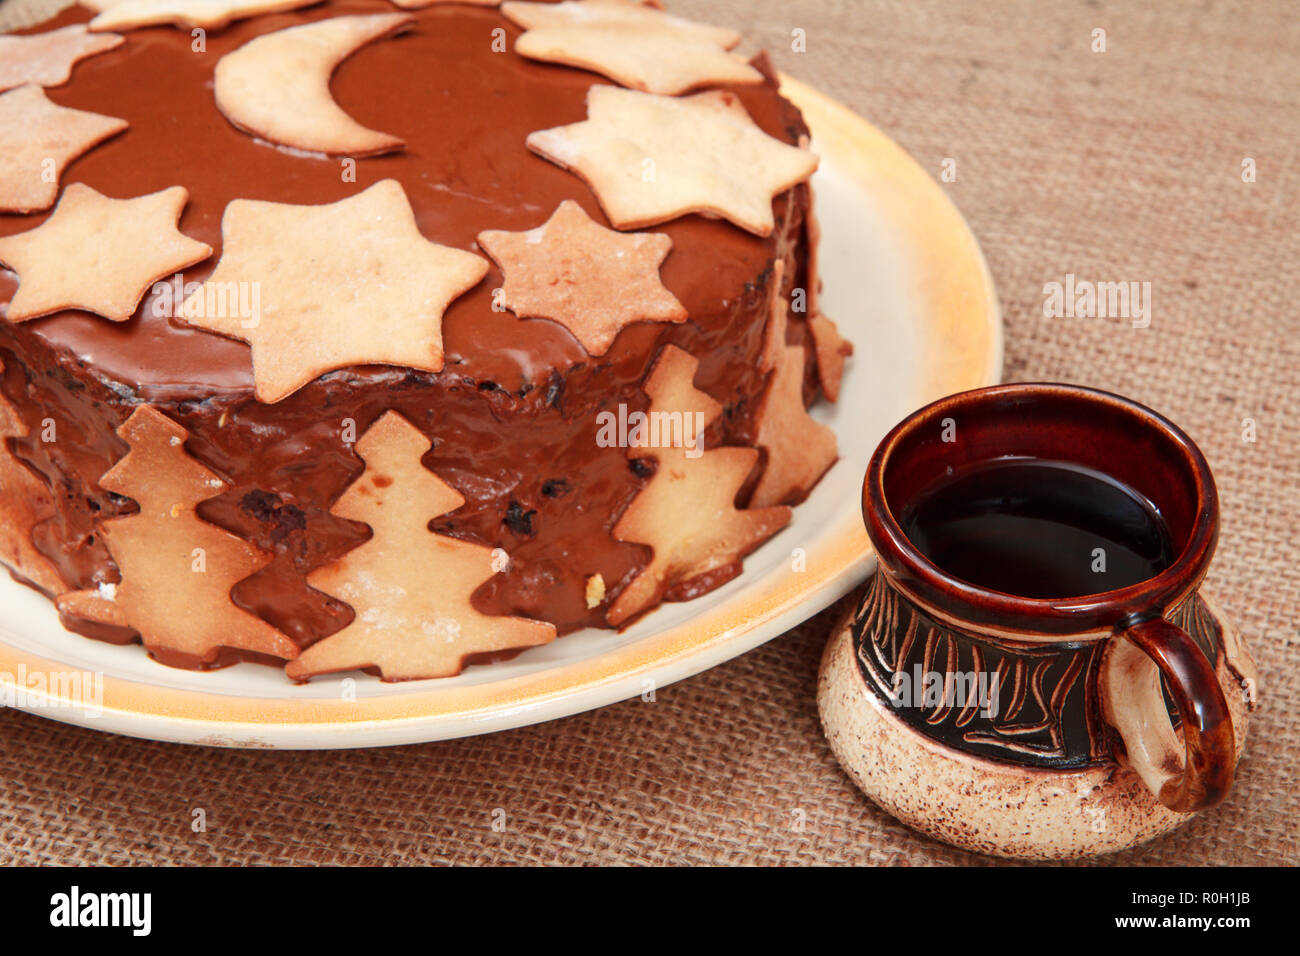 Homemade Chocolate Cake Decorated With Christmas Ornament And Cup Of